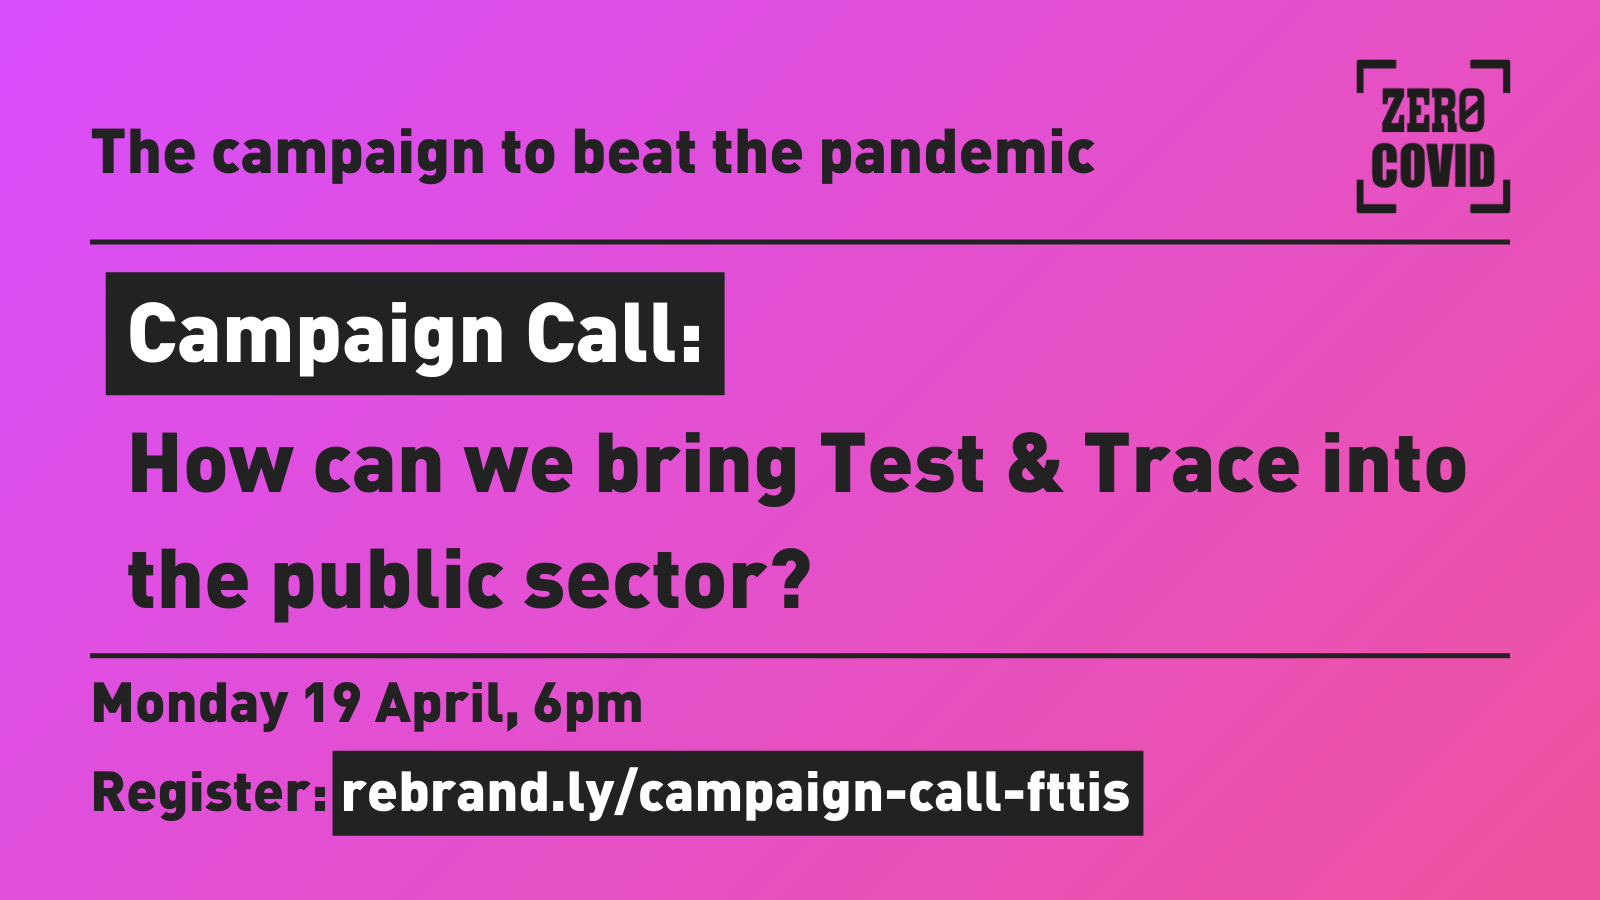 """A image publicising an event """"Campaign Call: How can we bring Test & Trace into the public sector"""" on Monday April 19 2021"""